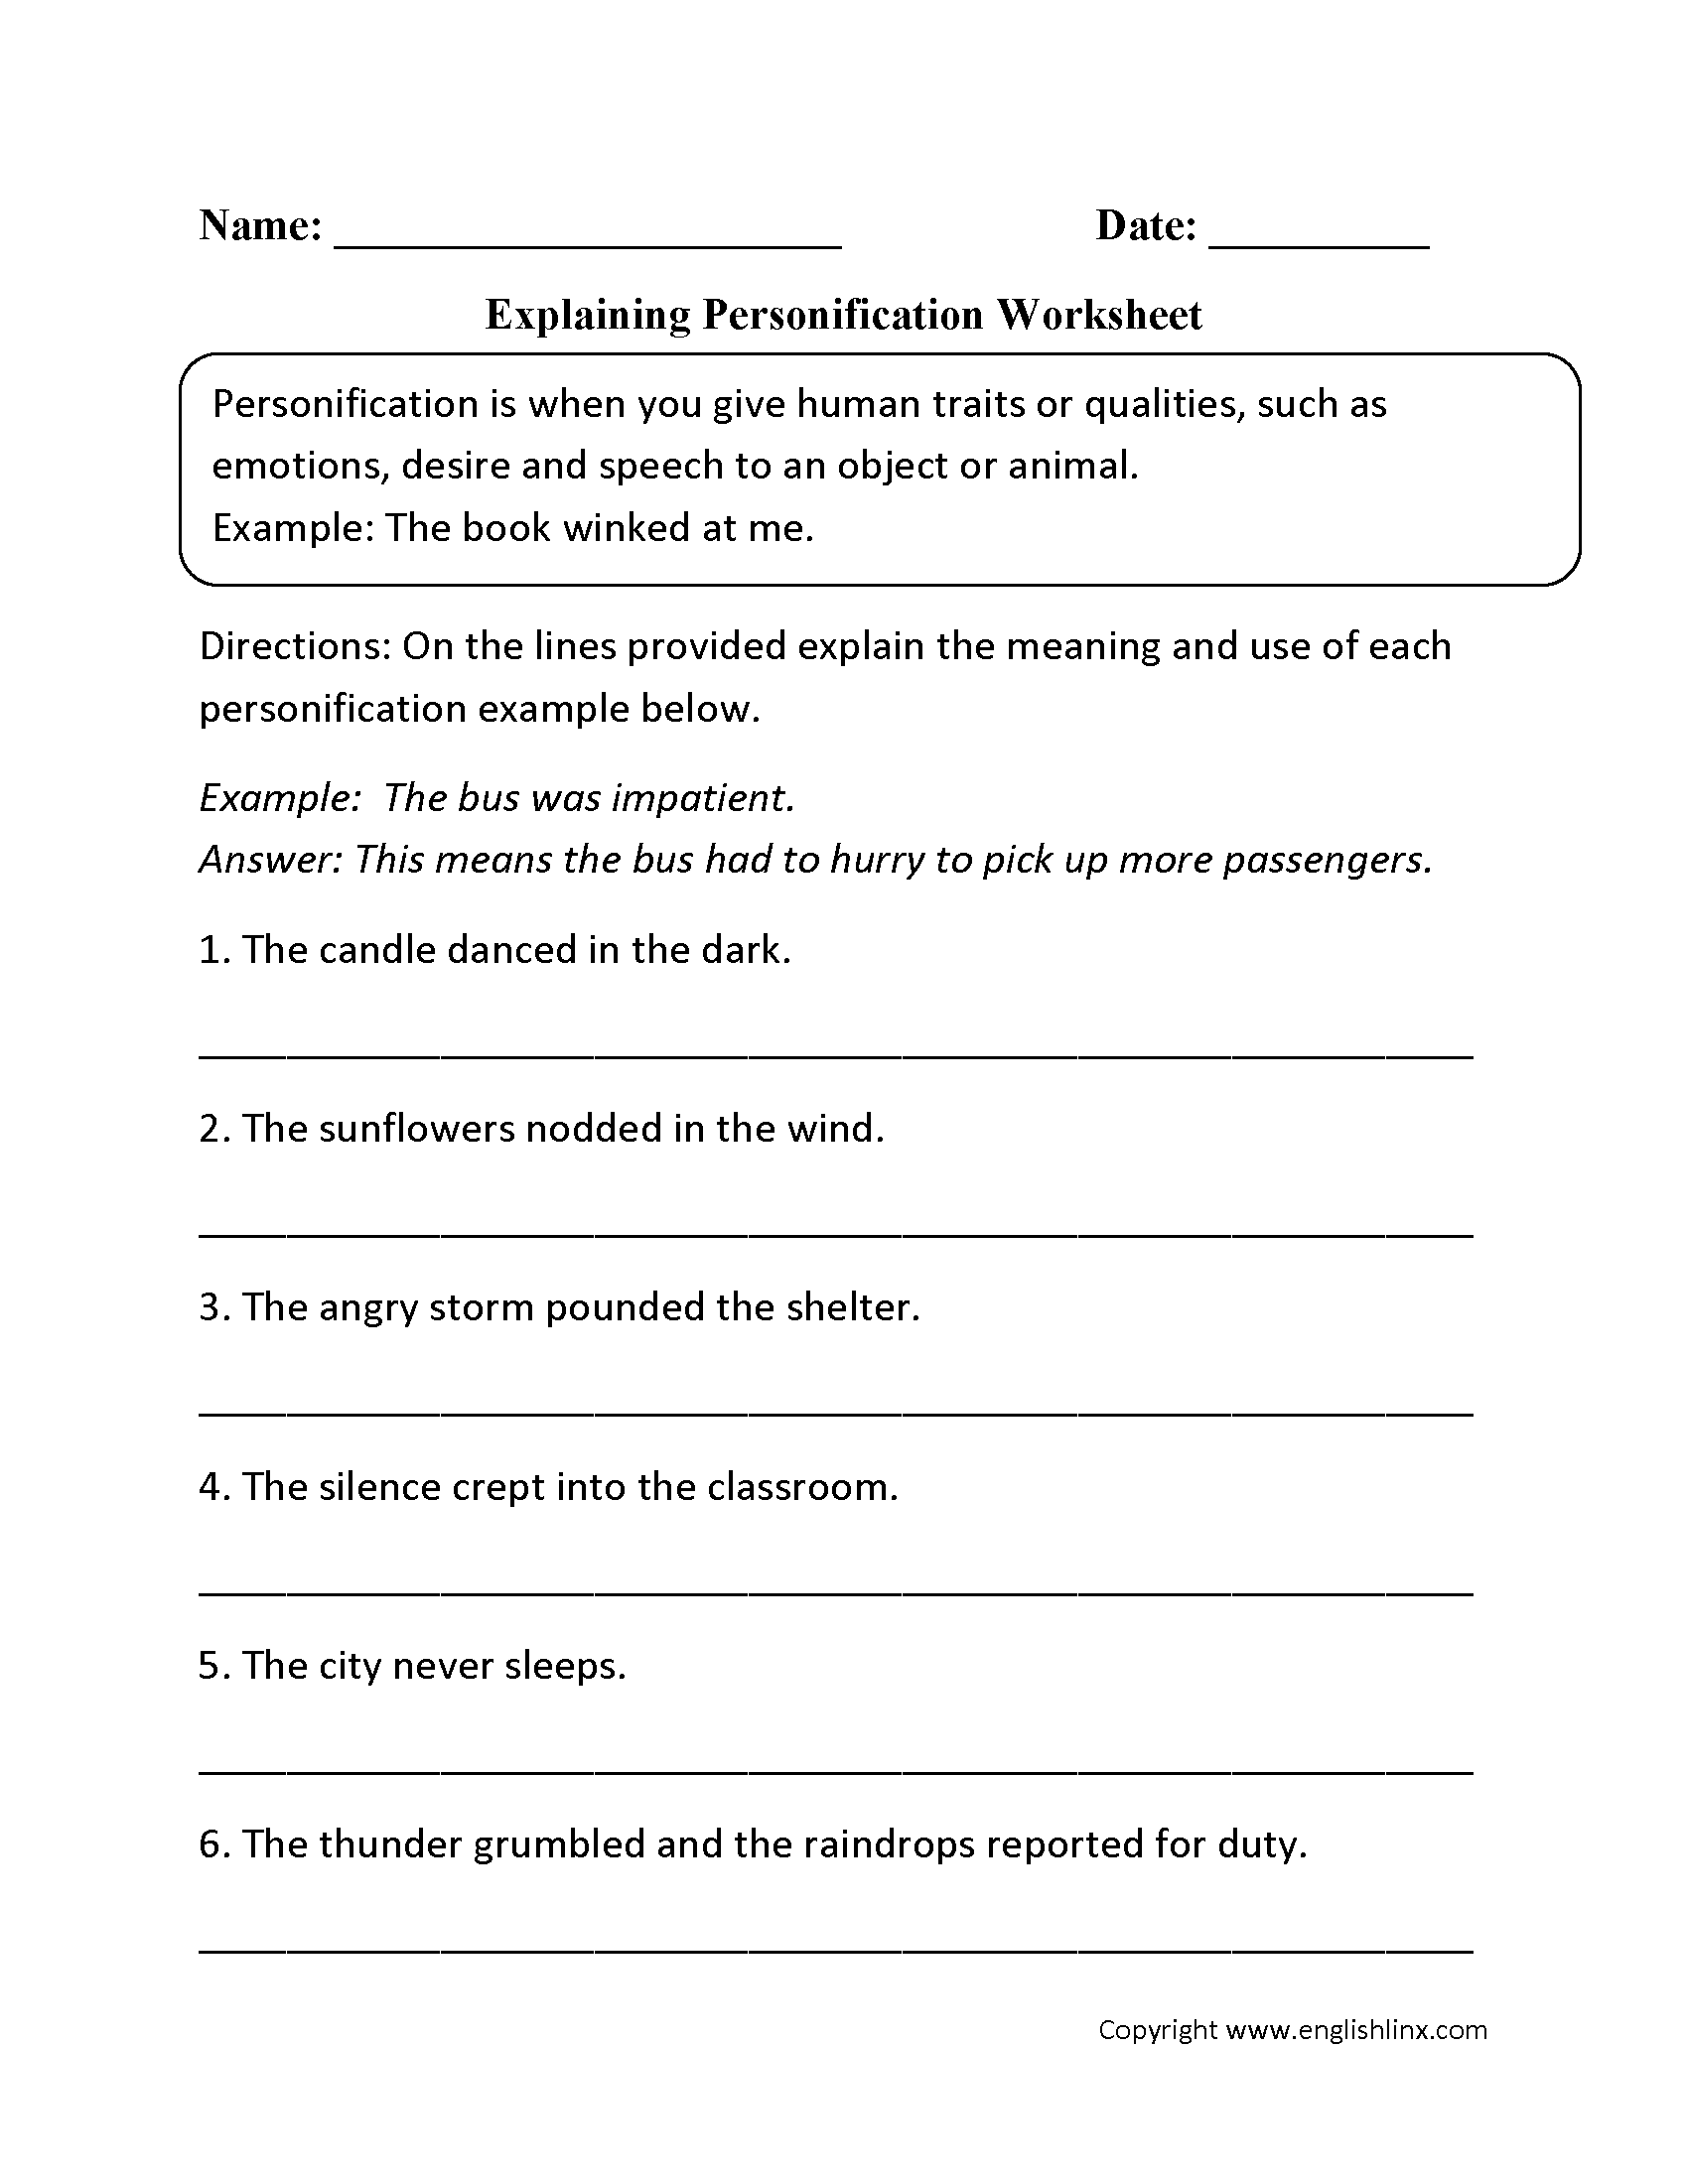 Worksheets Personification Worksheet figurative language worksheets personification worksheets